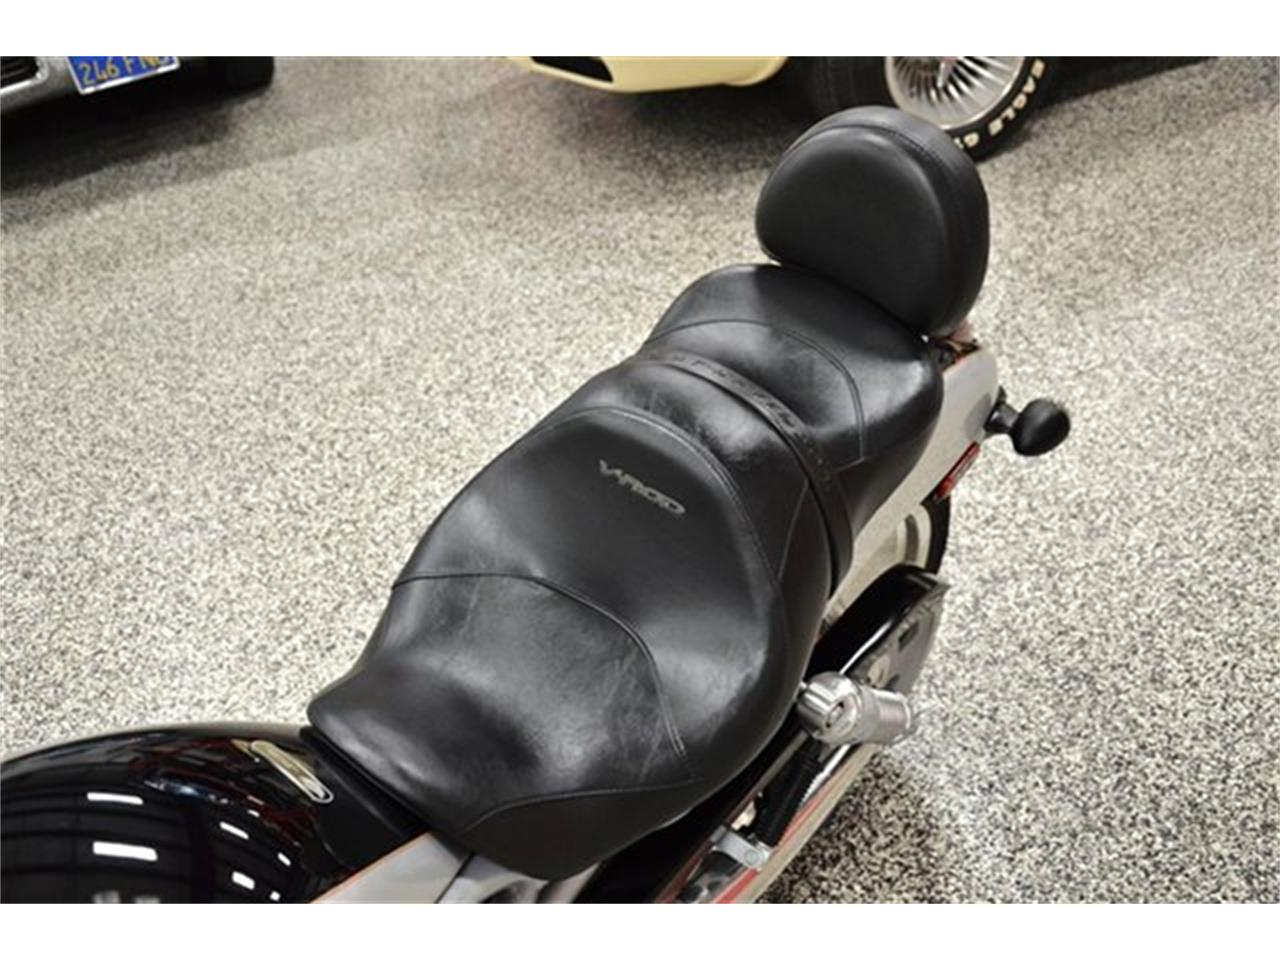 2003 Harley-Davidson VRSC for sale in Plainfield, IL – photo 12